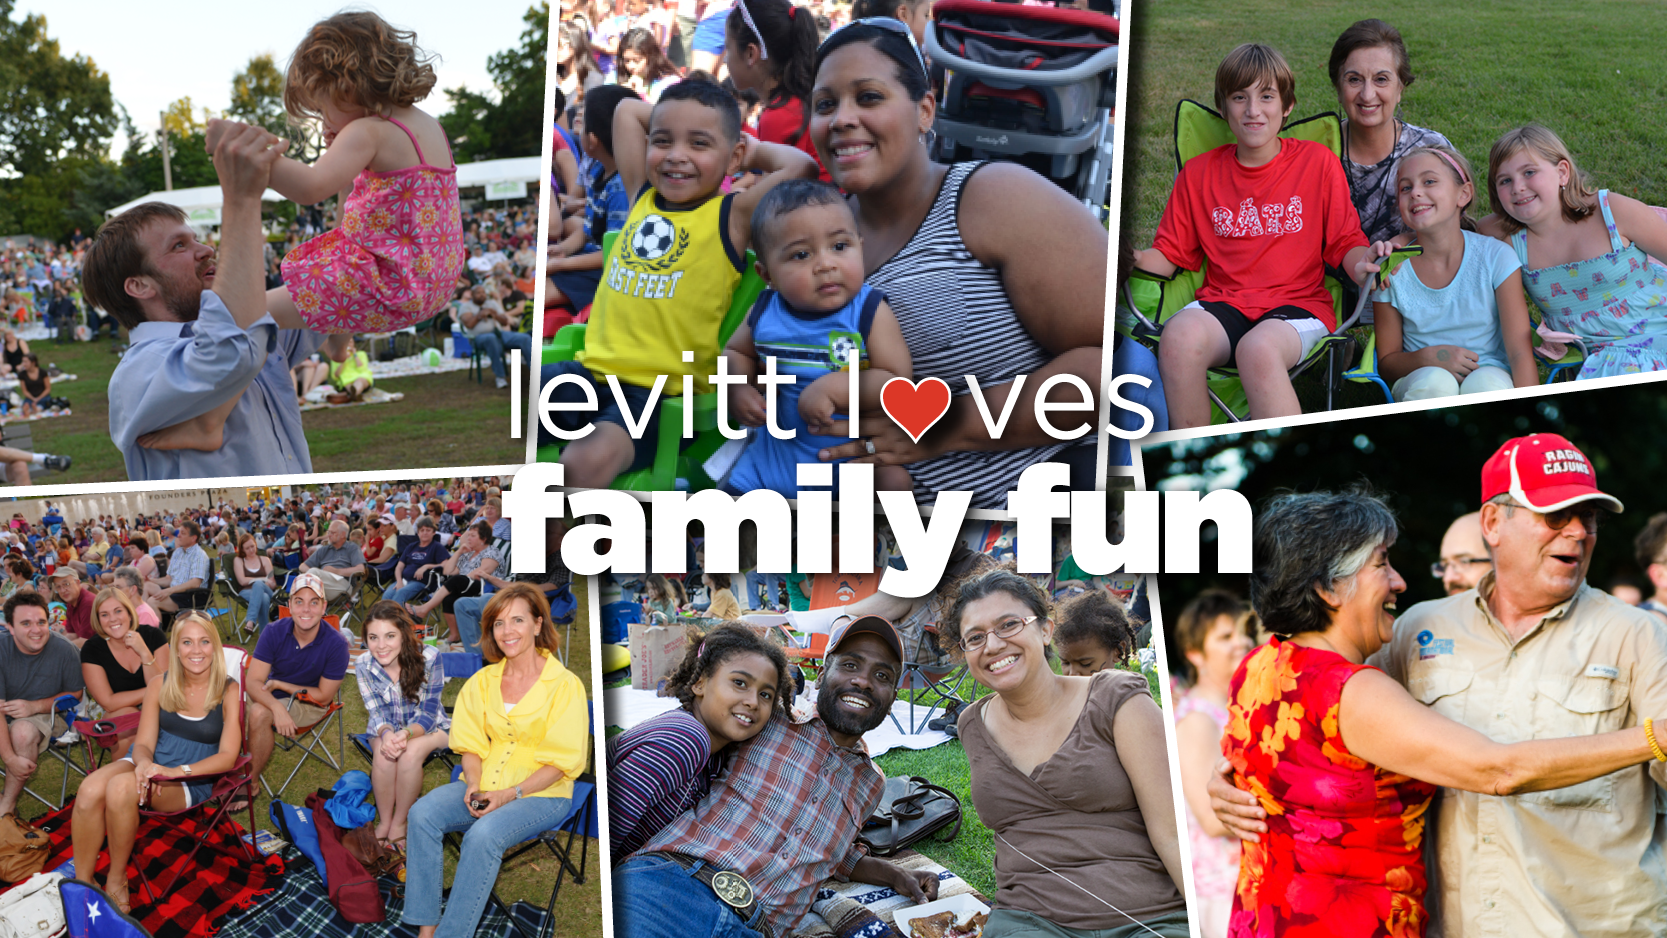 Levitt Loves Family Fun